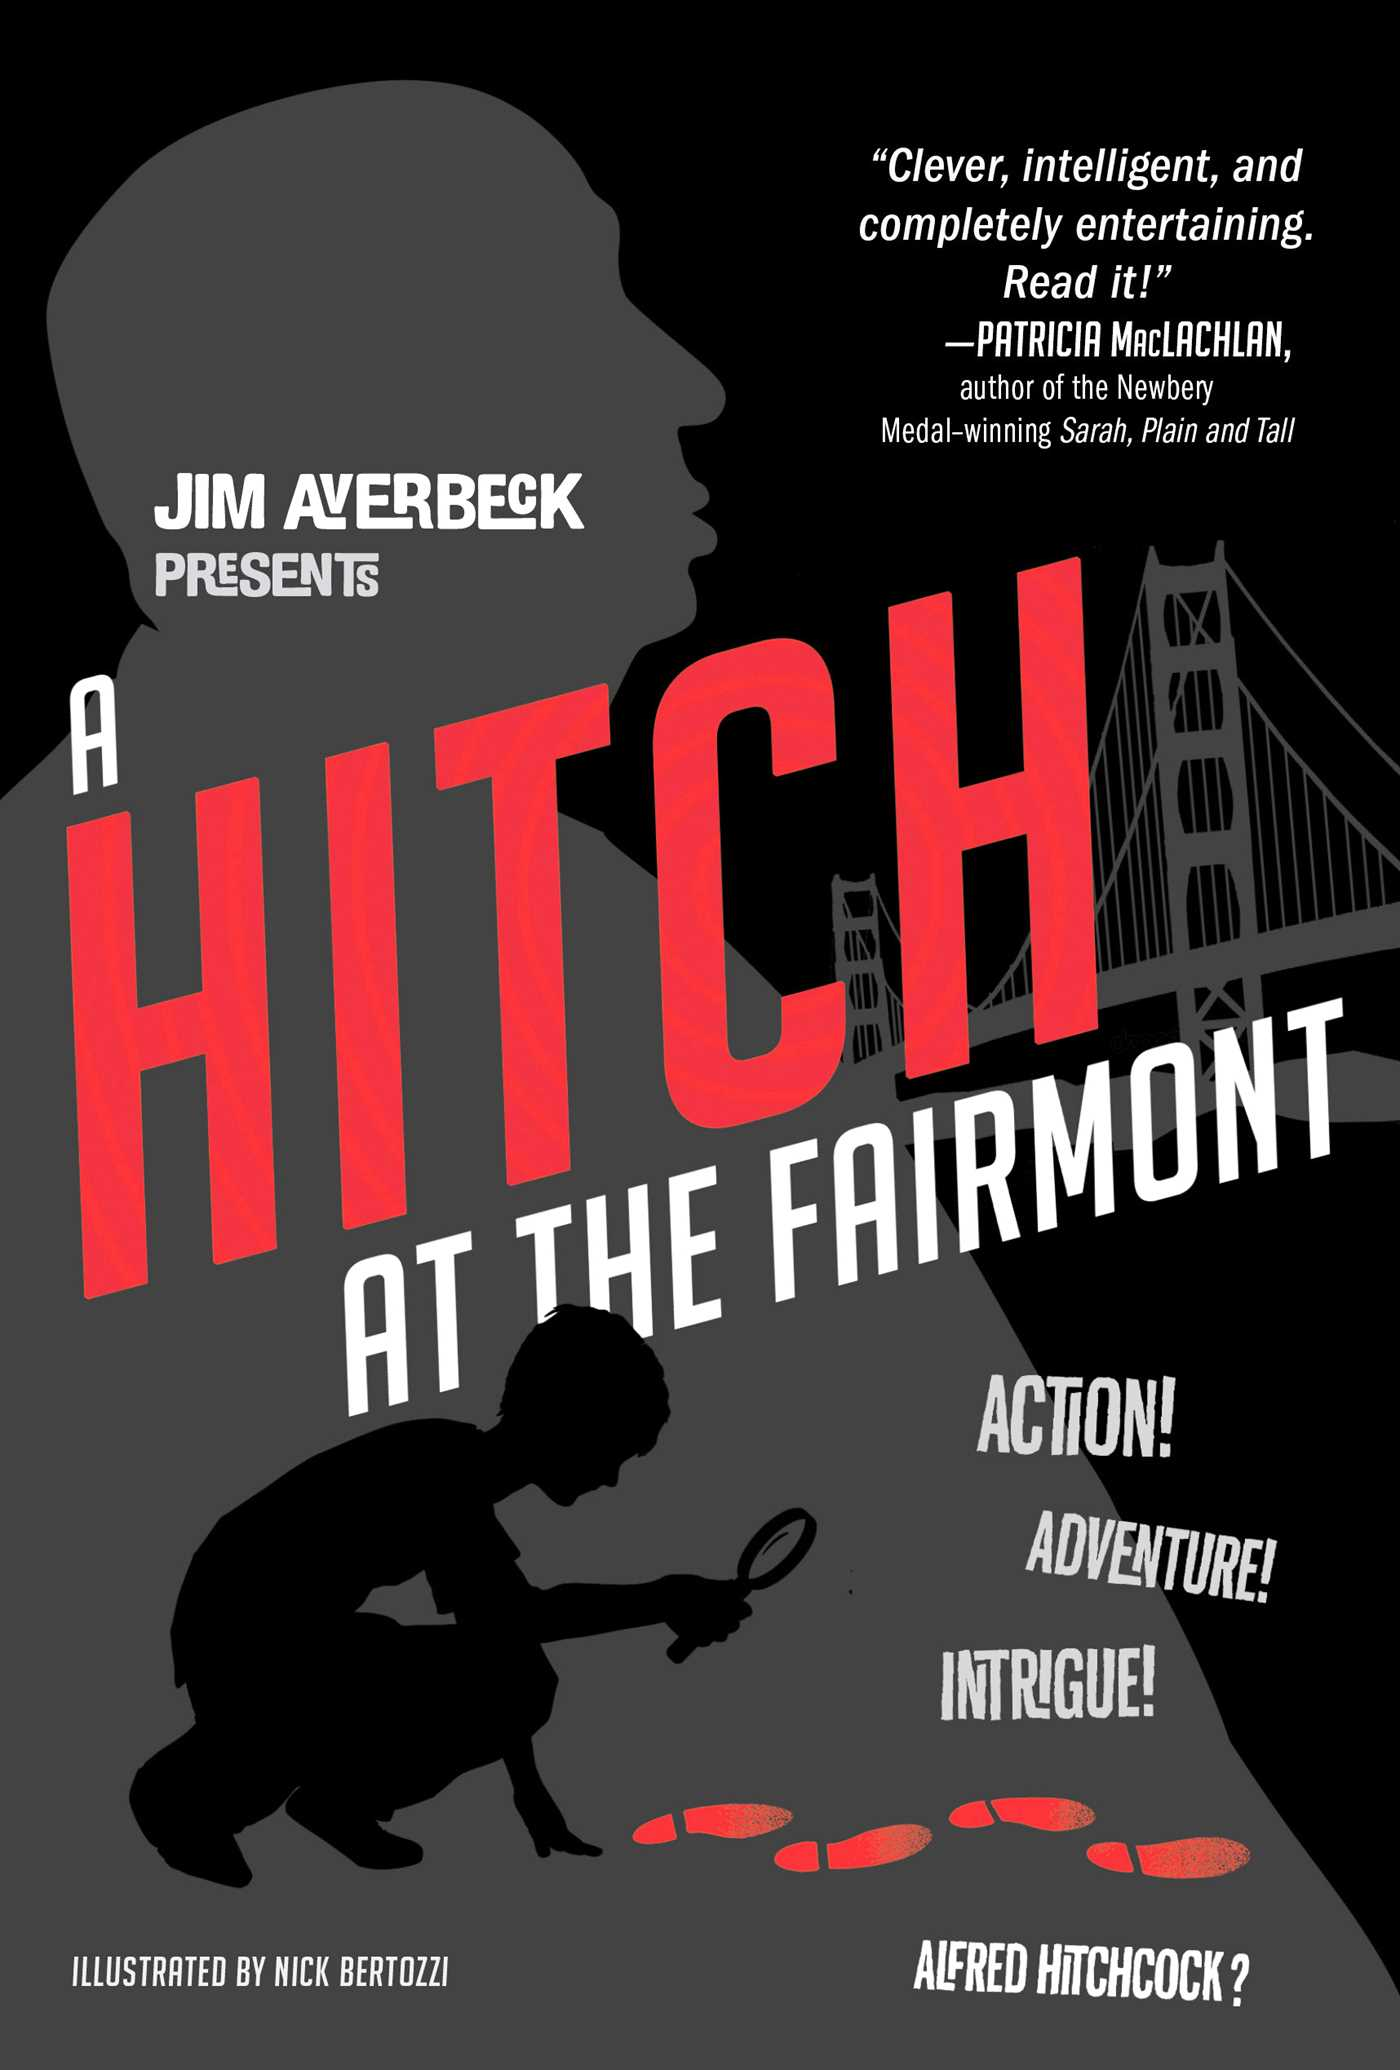 Hitch at the fairmont 9781442494473 hr